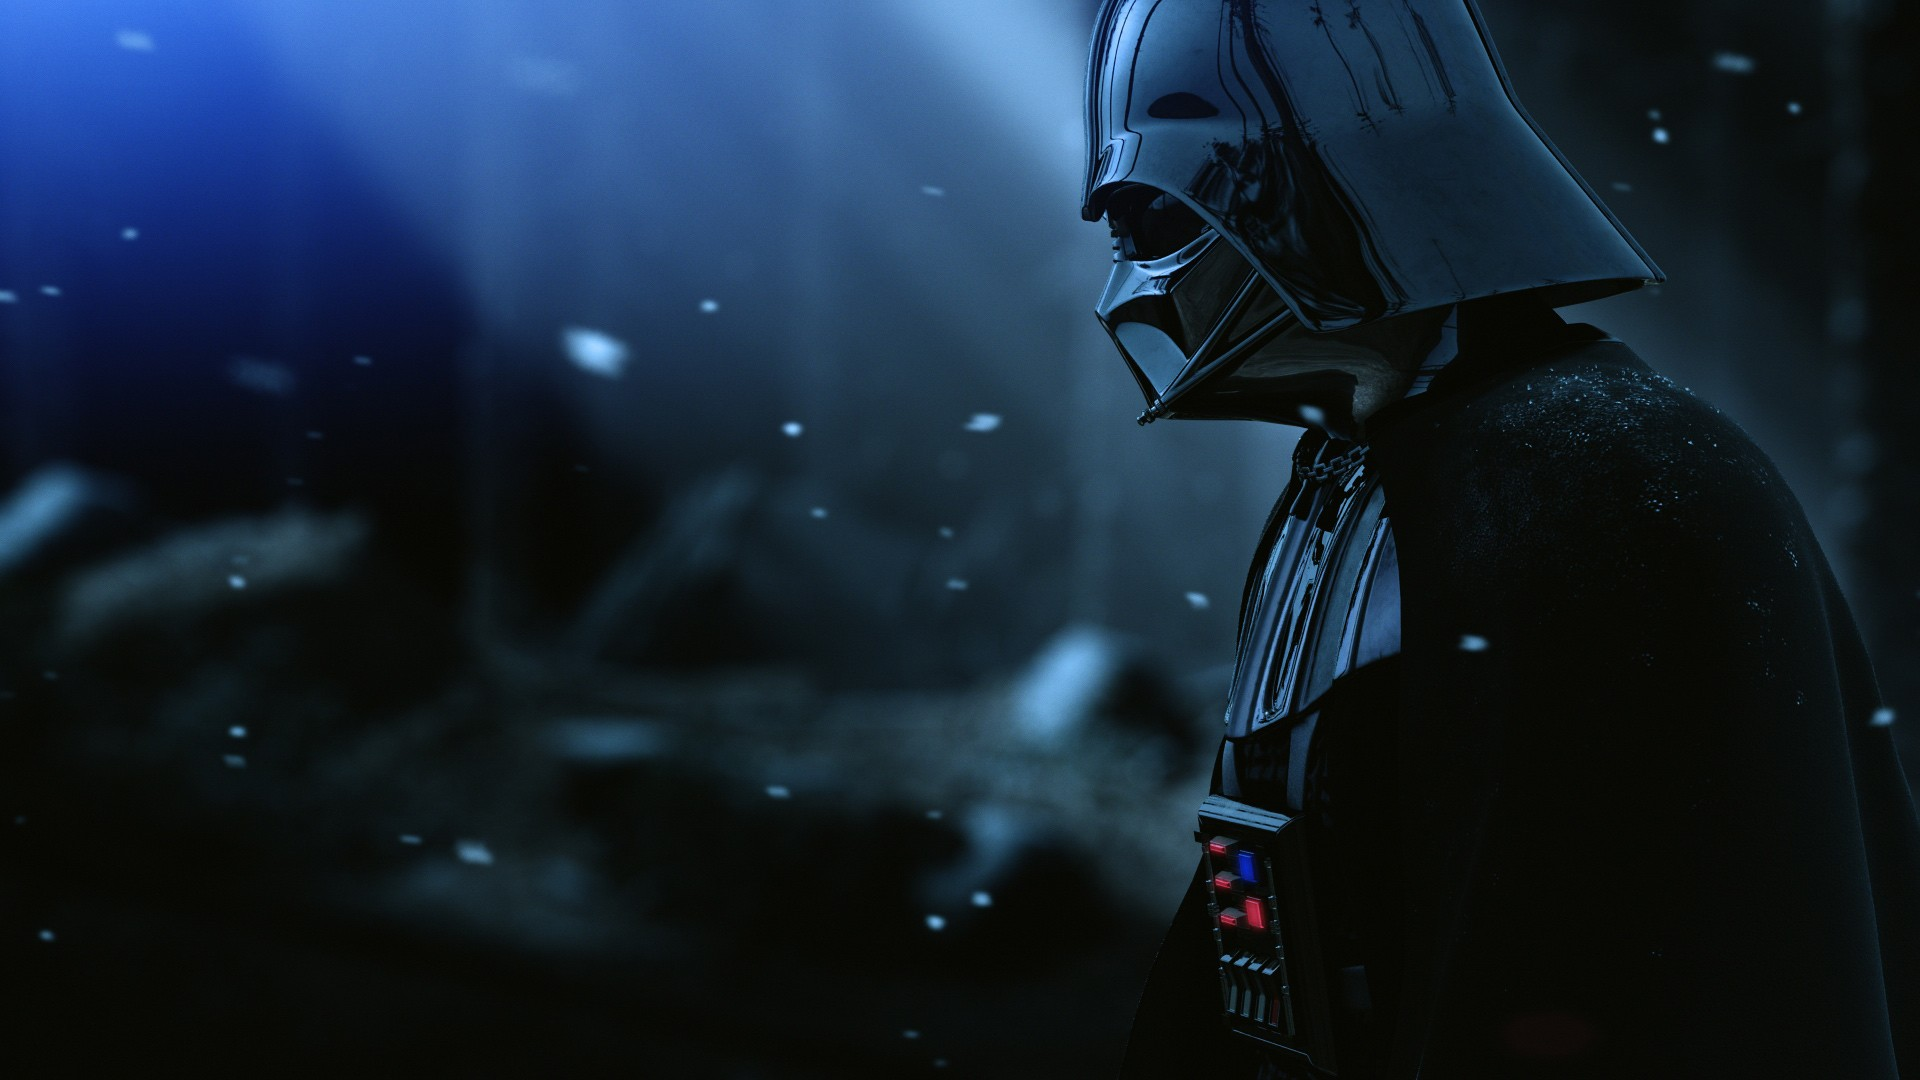 Where Can I Find a Great Star Wars Wallpaper